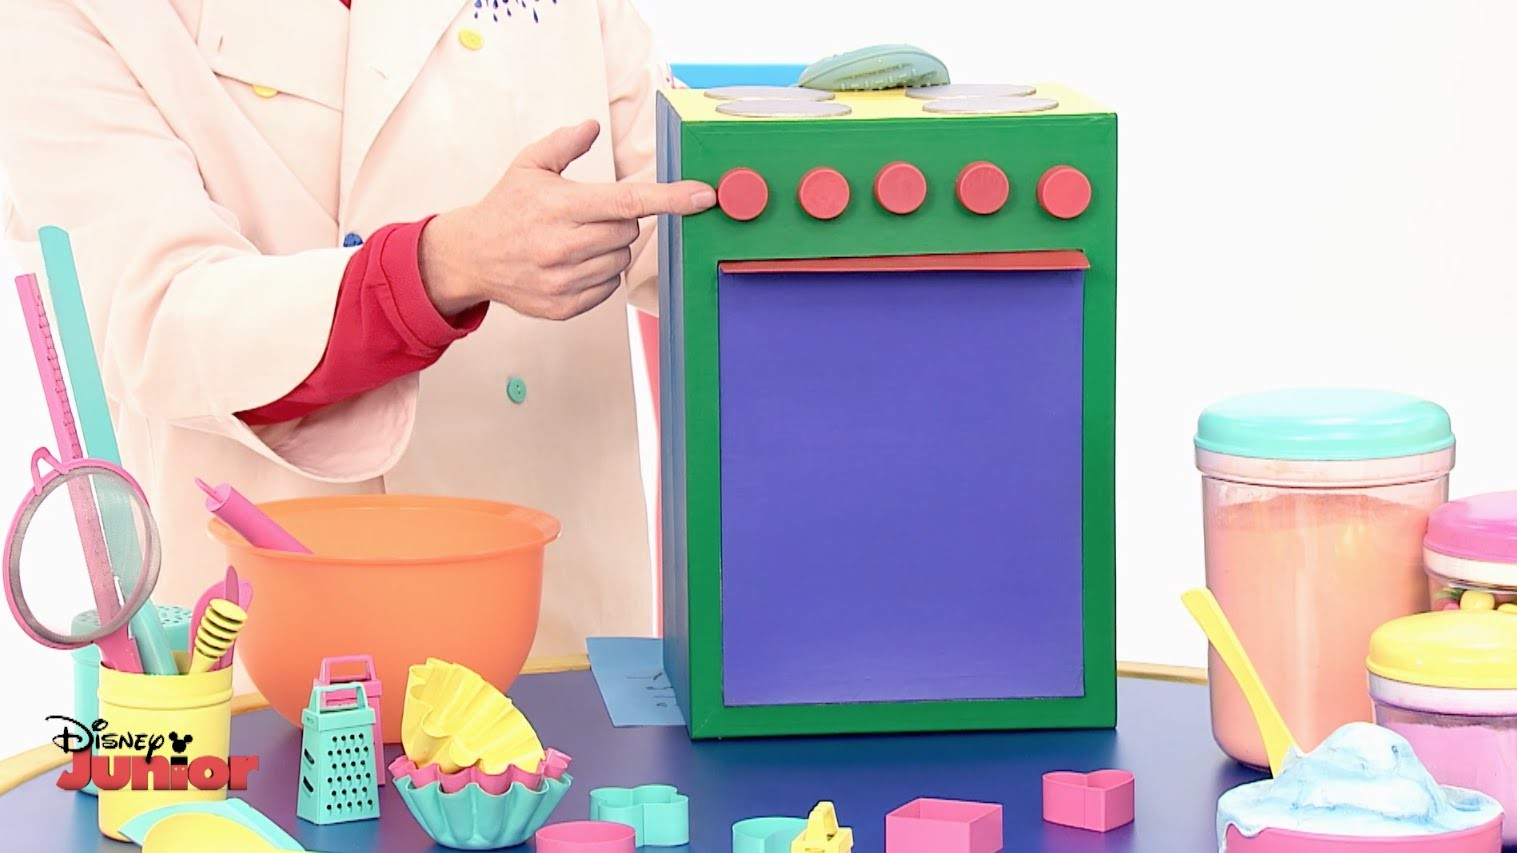 Art Attack - Cooker - Official Disney Junior UK HD